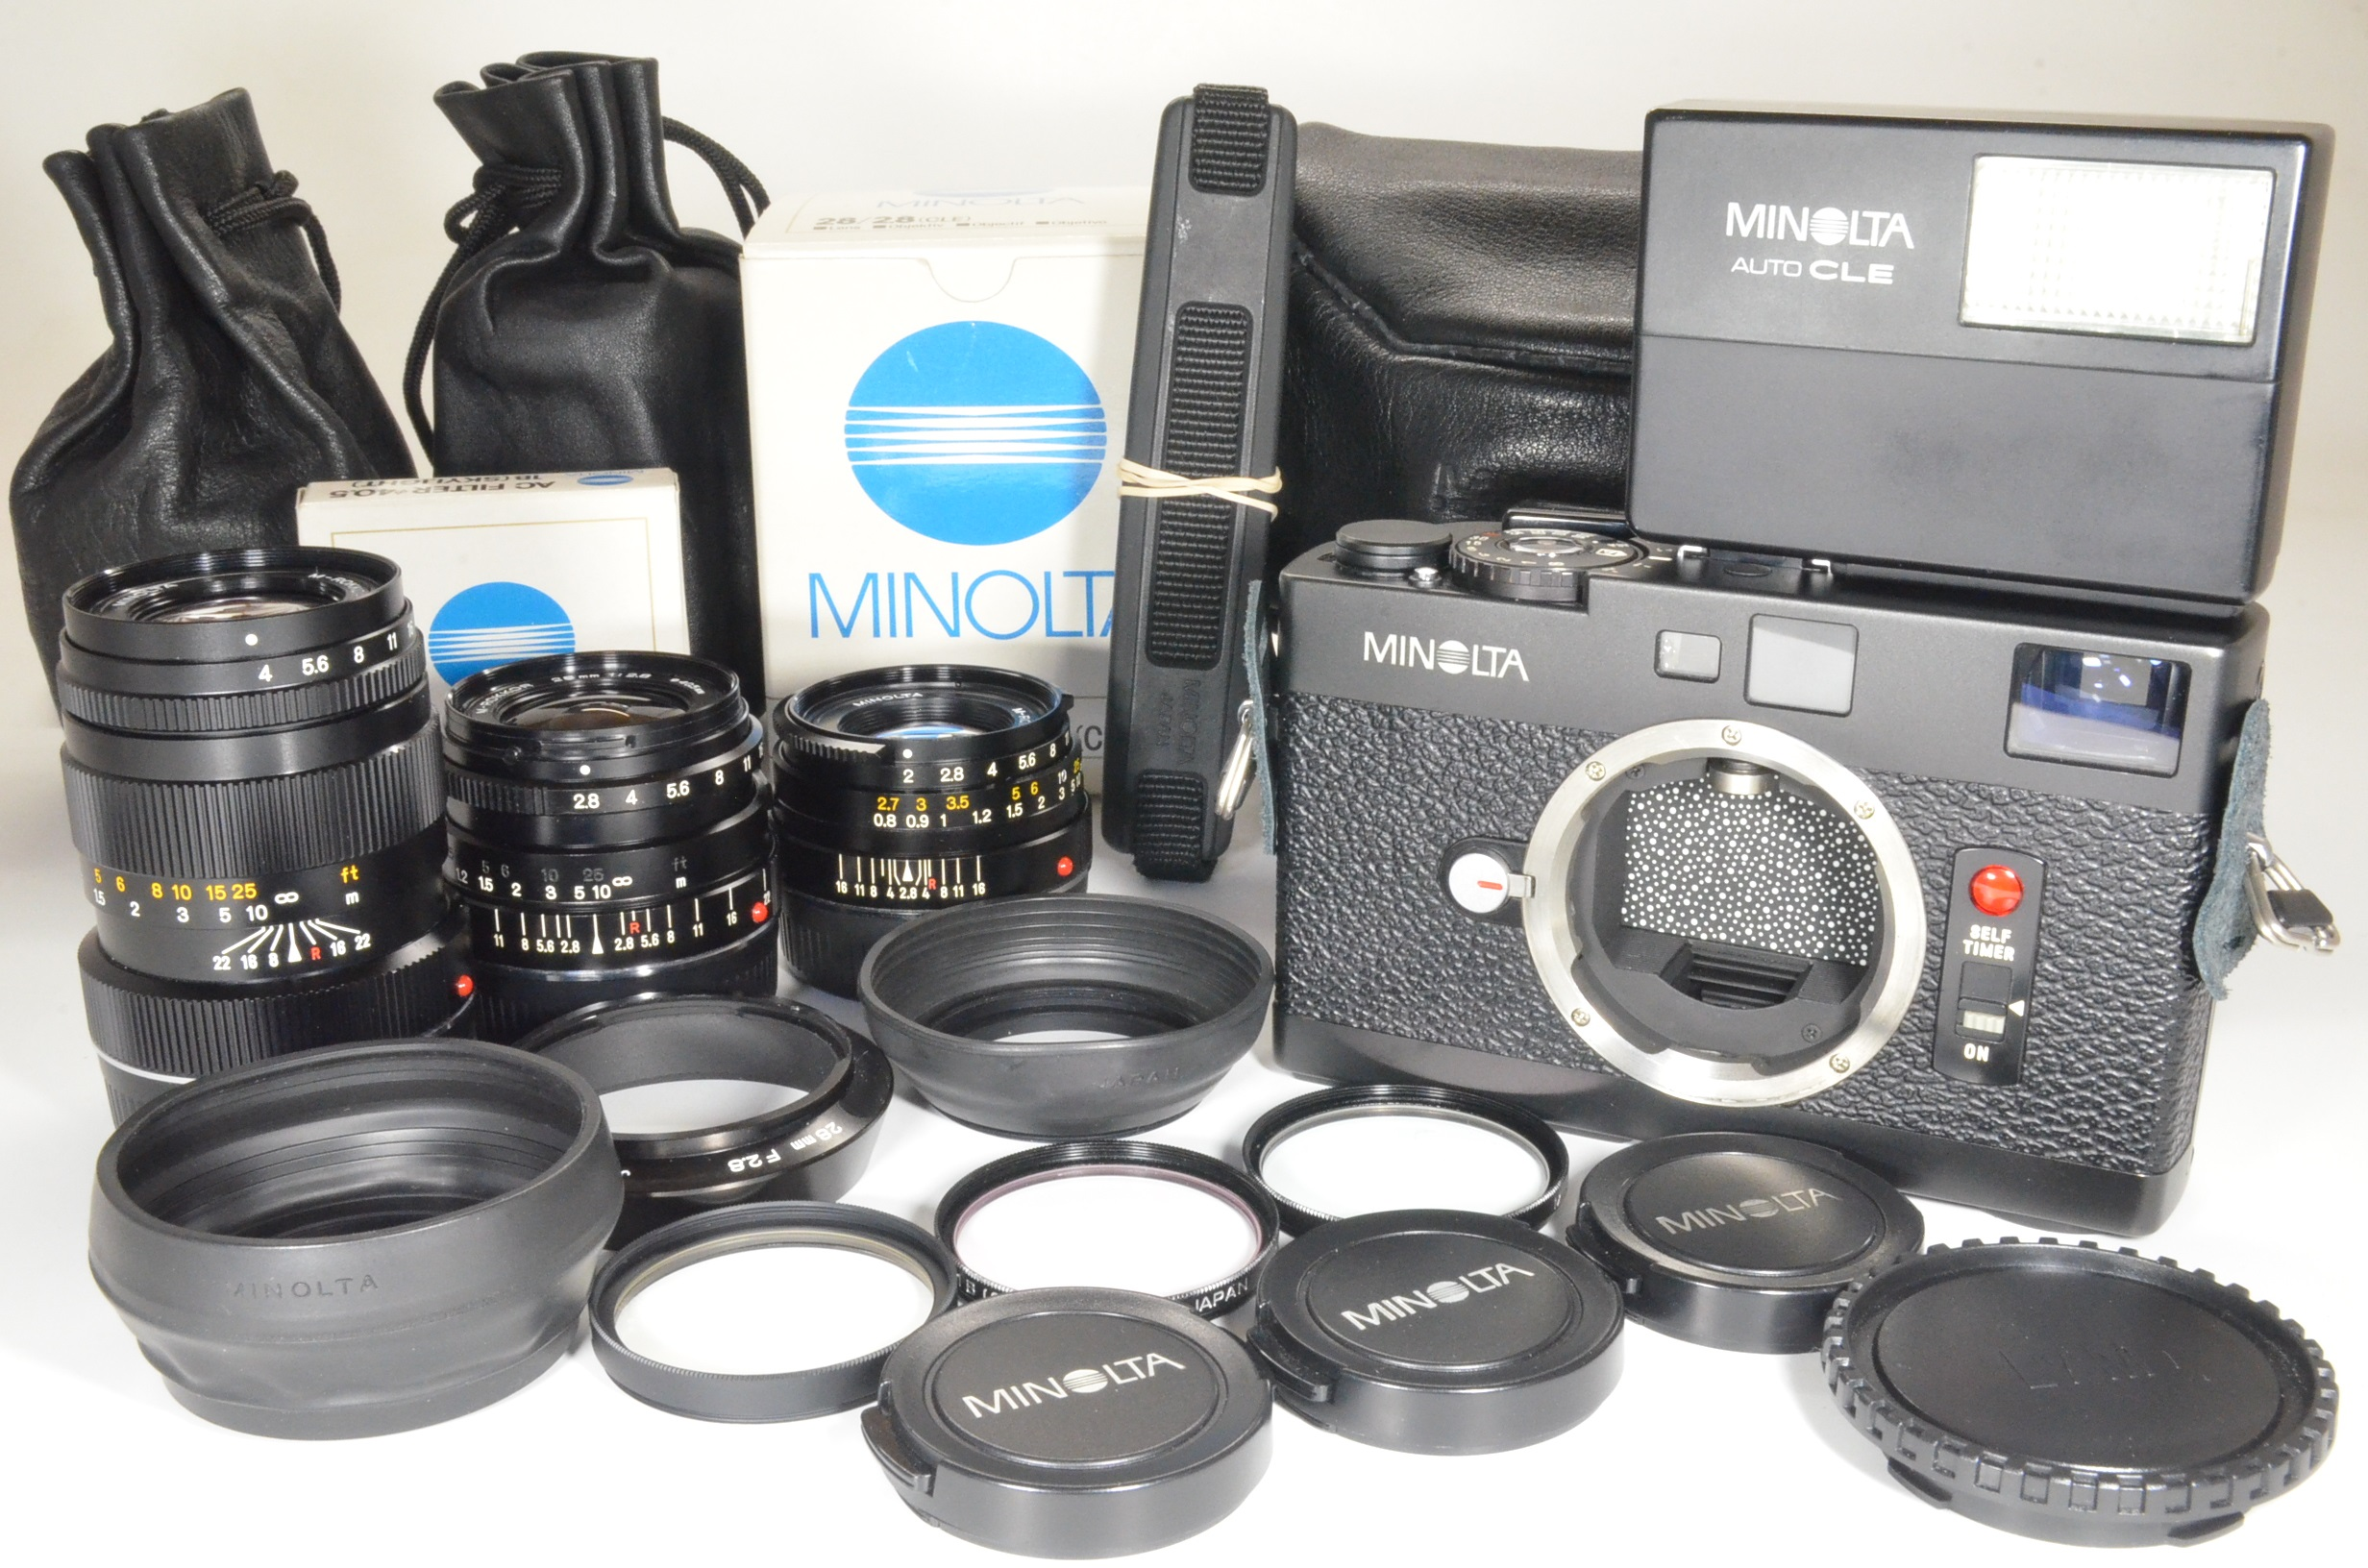 minolta cle film camera w/ m-rokkor 40mm, 28mm, 90mm and flash, shooting tested